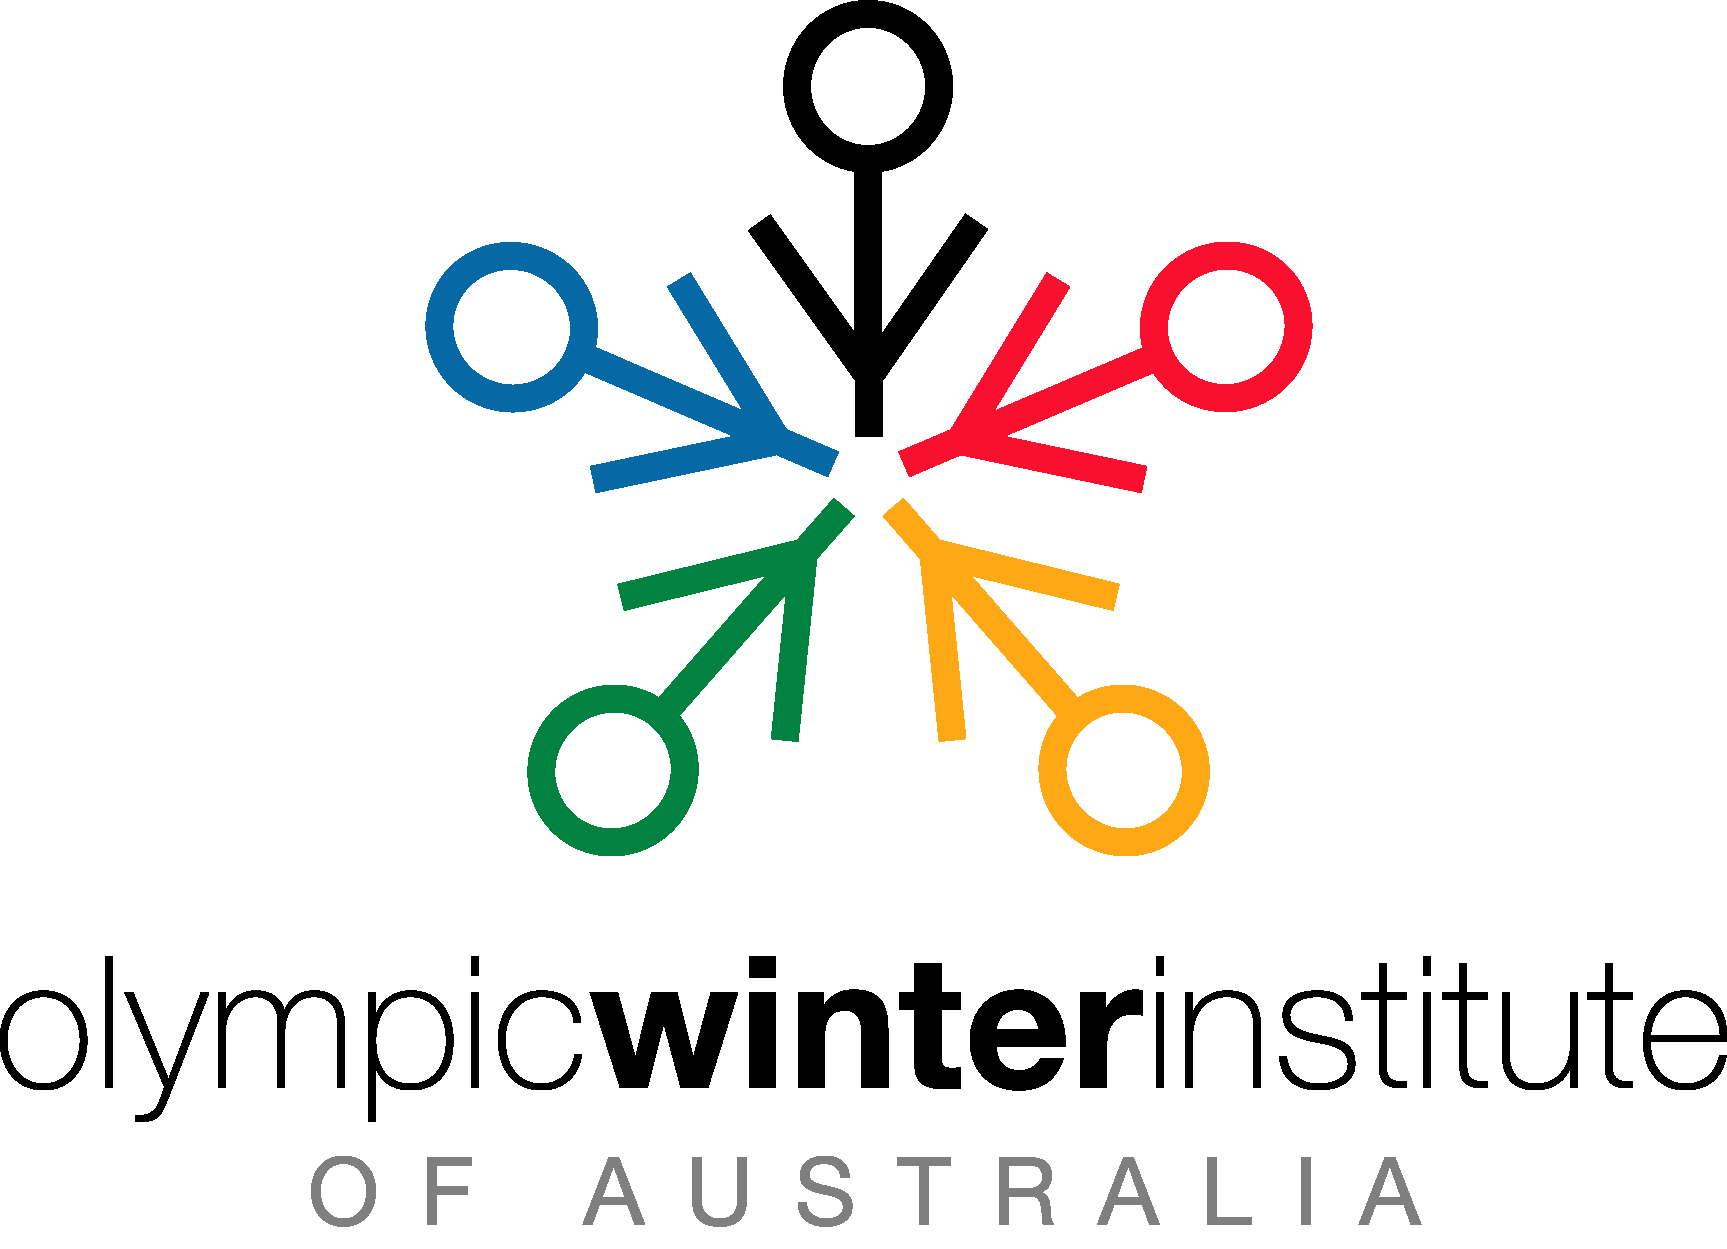 Olympic-Winter-Institute-of-Australia-Logo